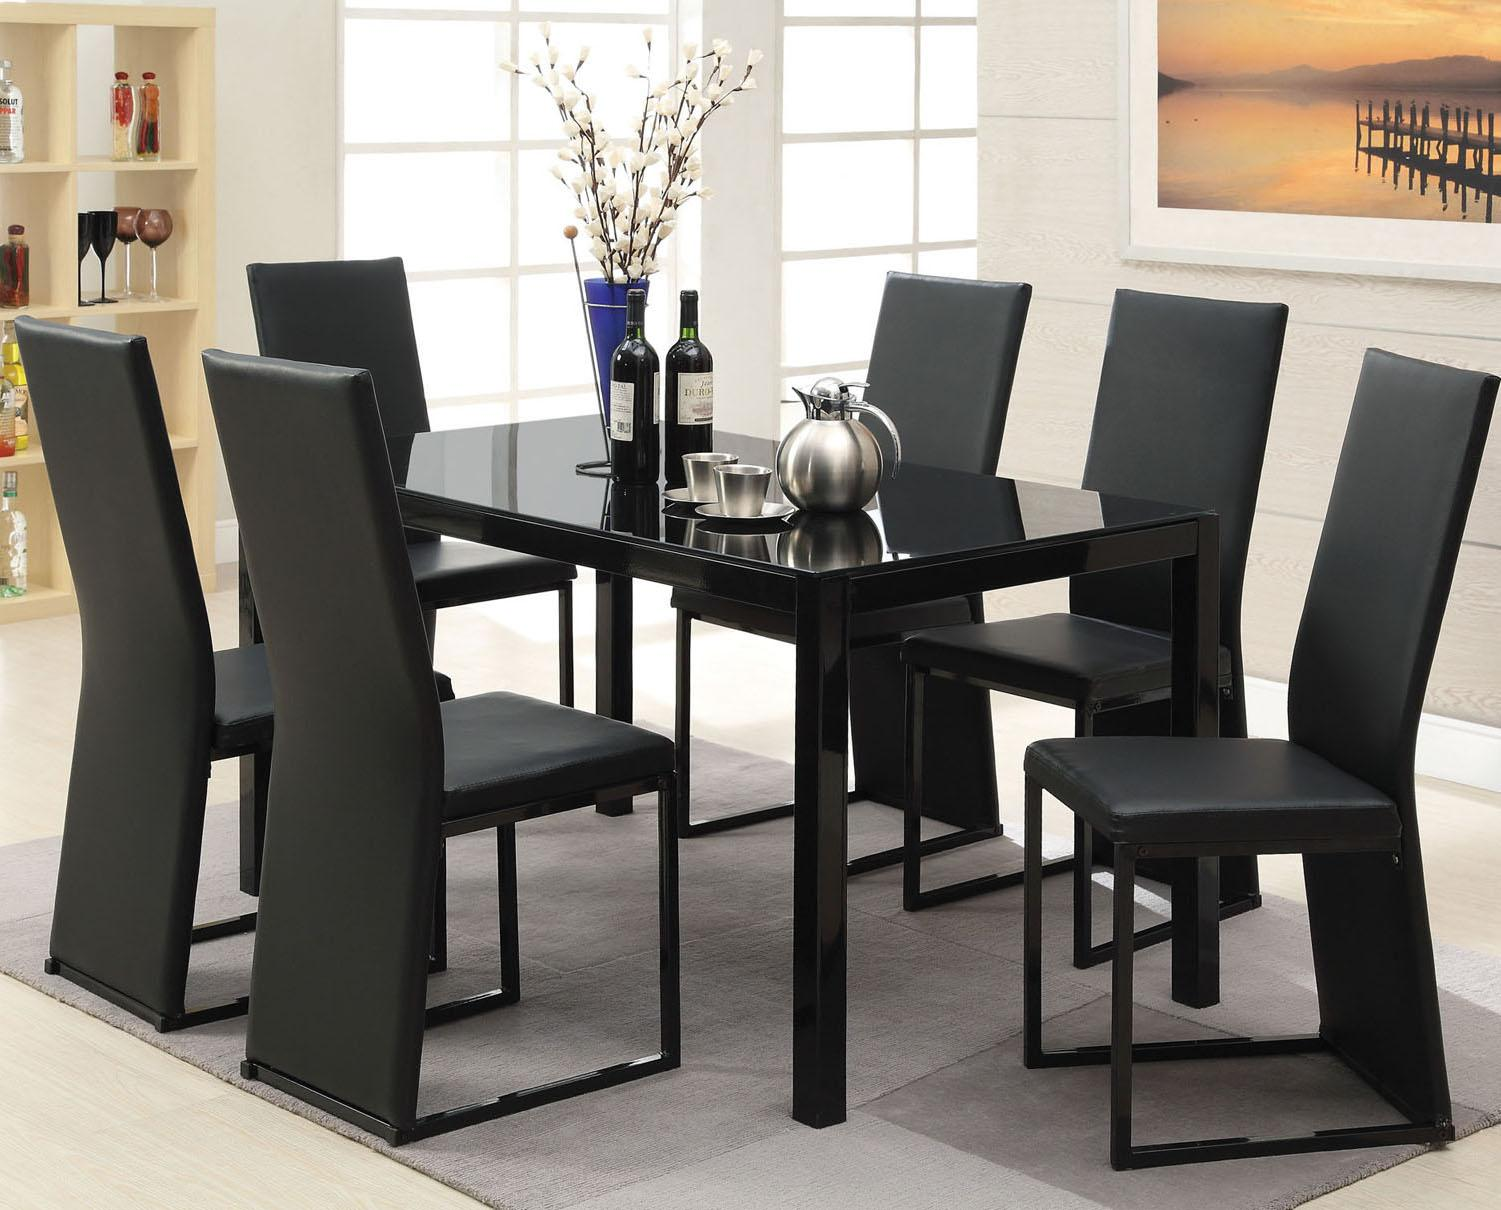 Acme Furniture Riggan Black Leg Table With Vinyl Chairs Set Item Number 60204